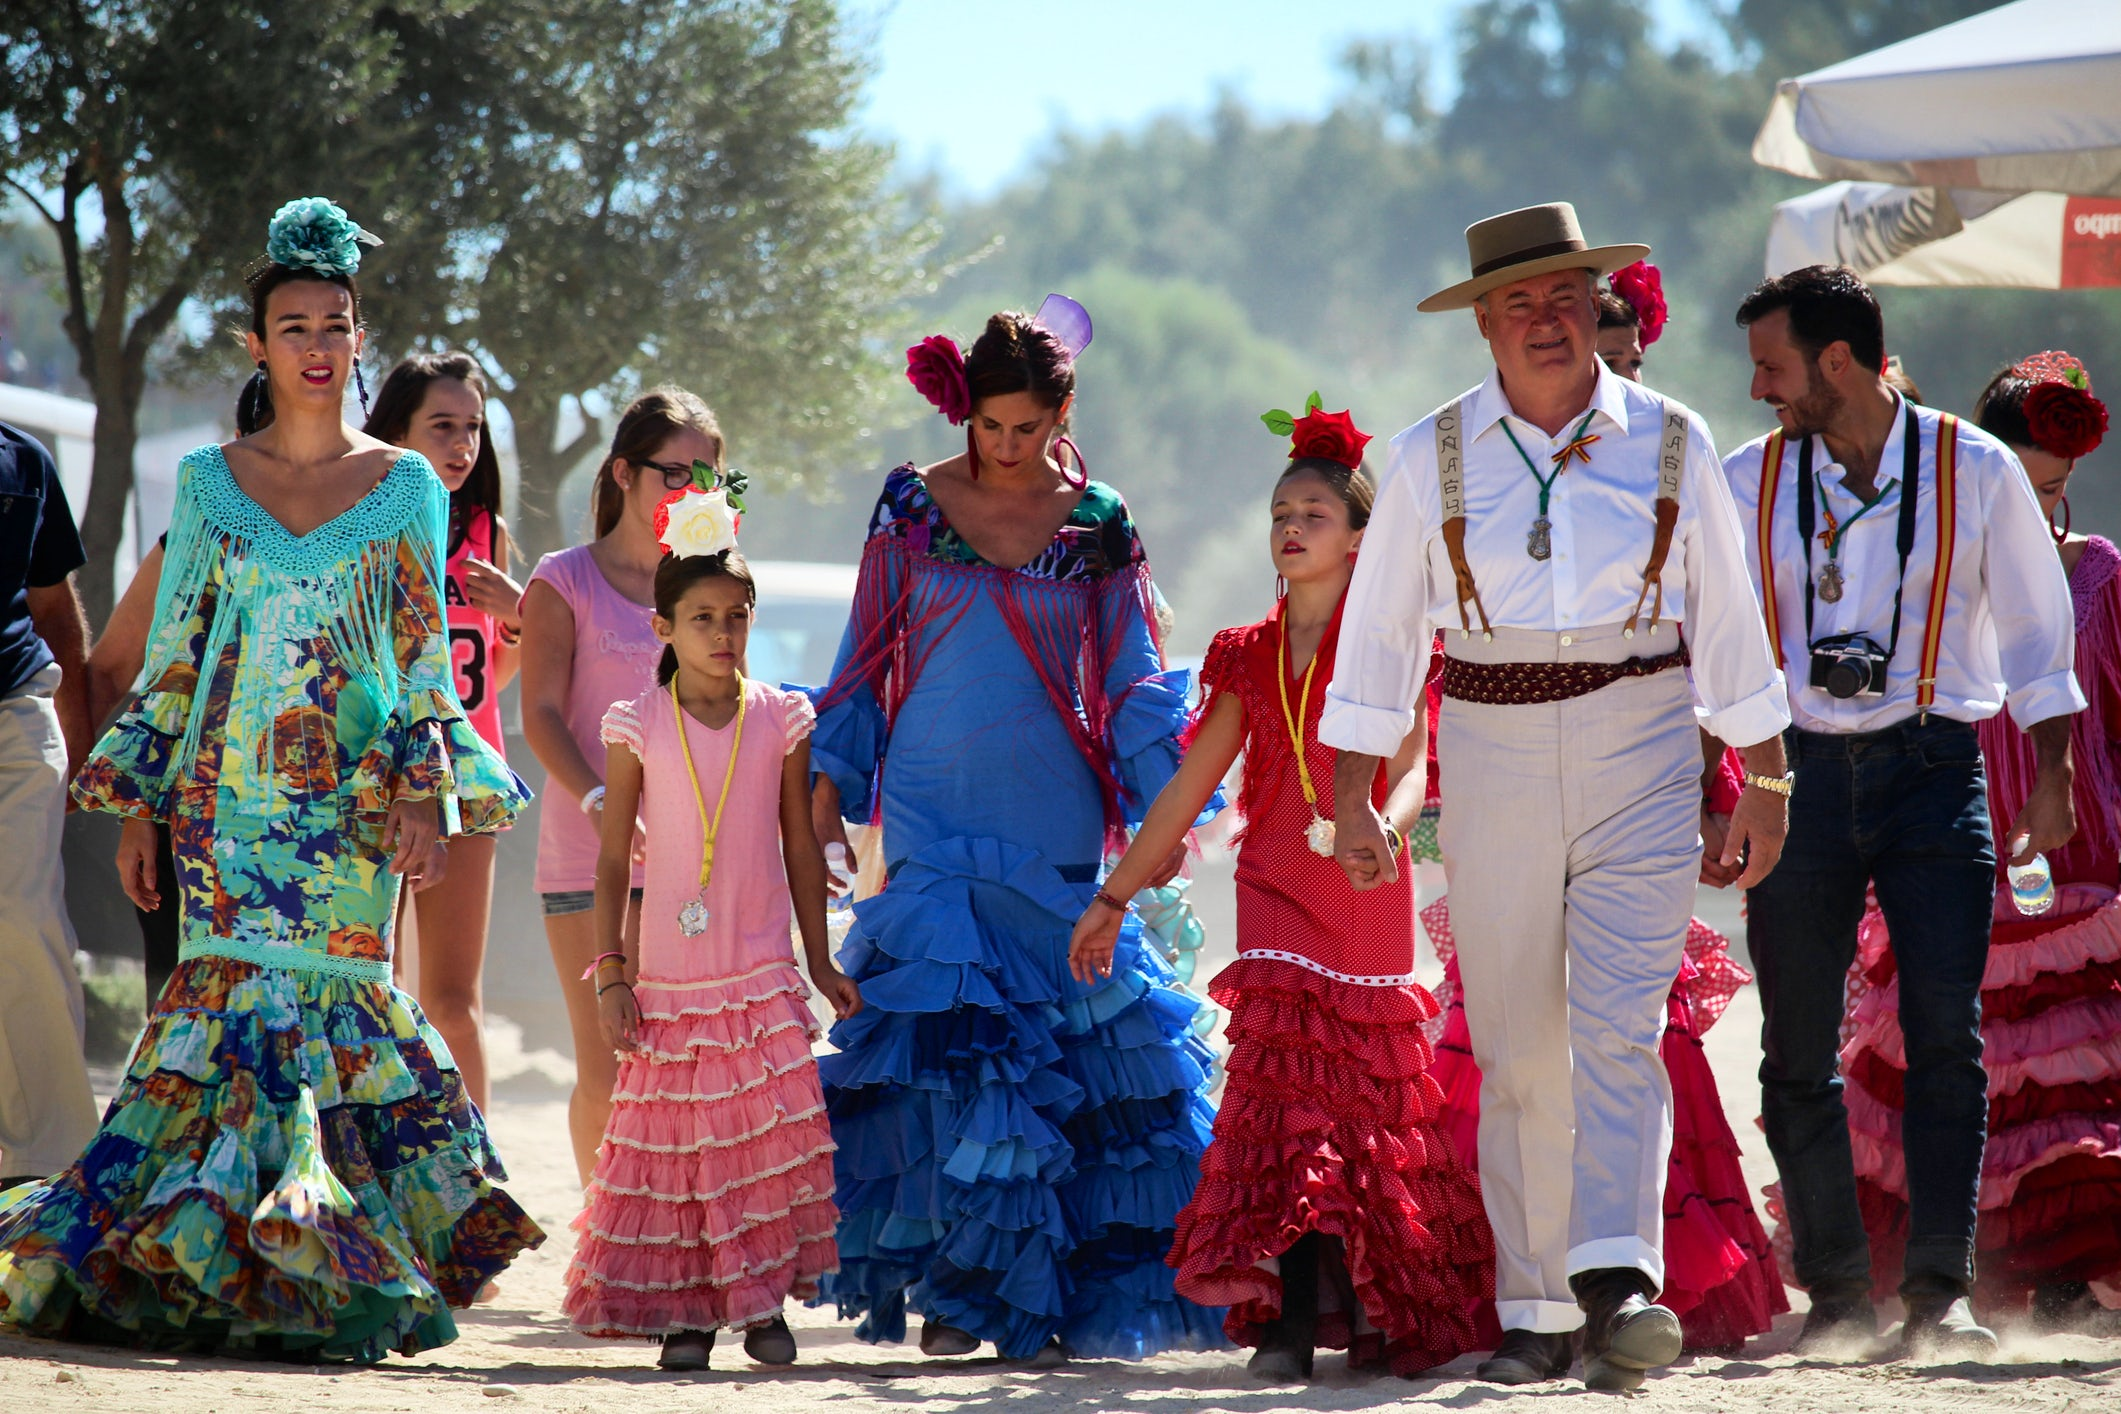 Spain, the country of fiestas and festivals!